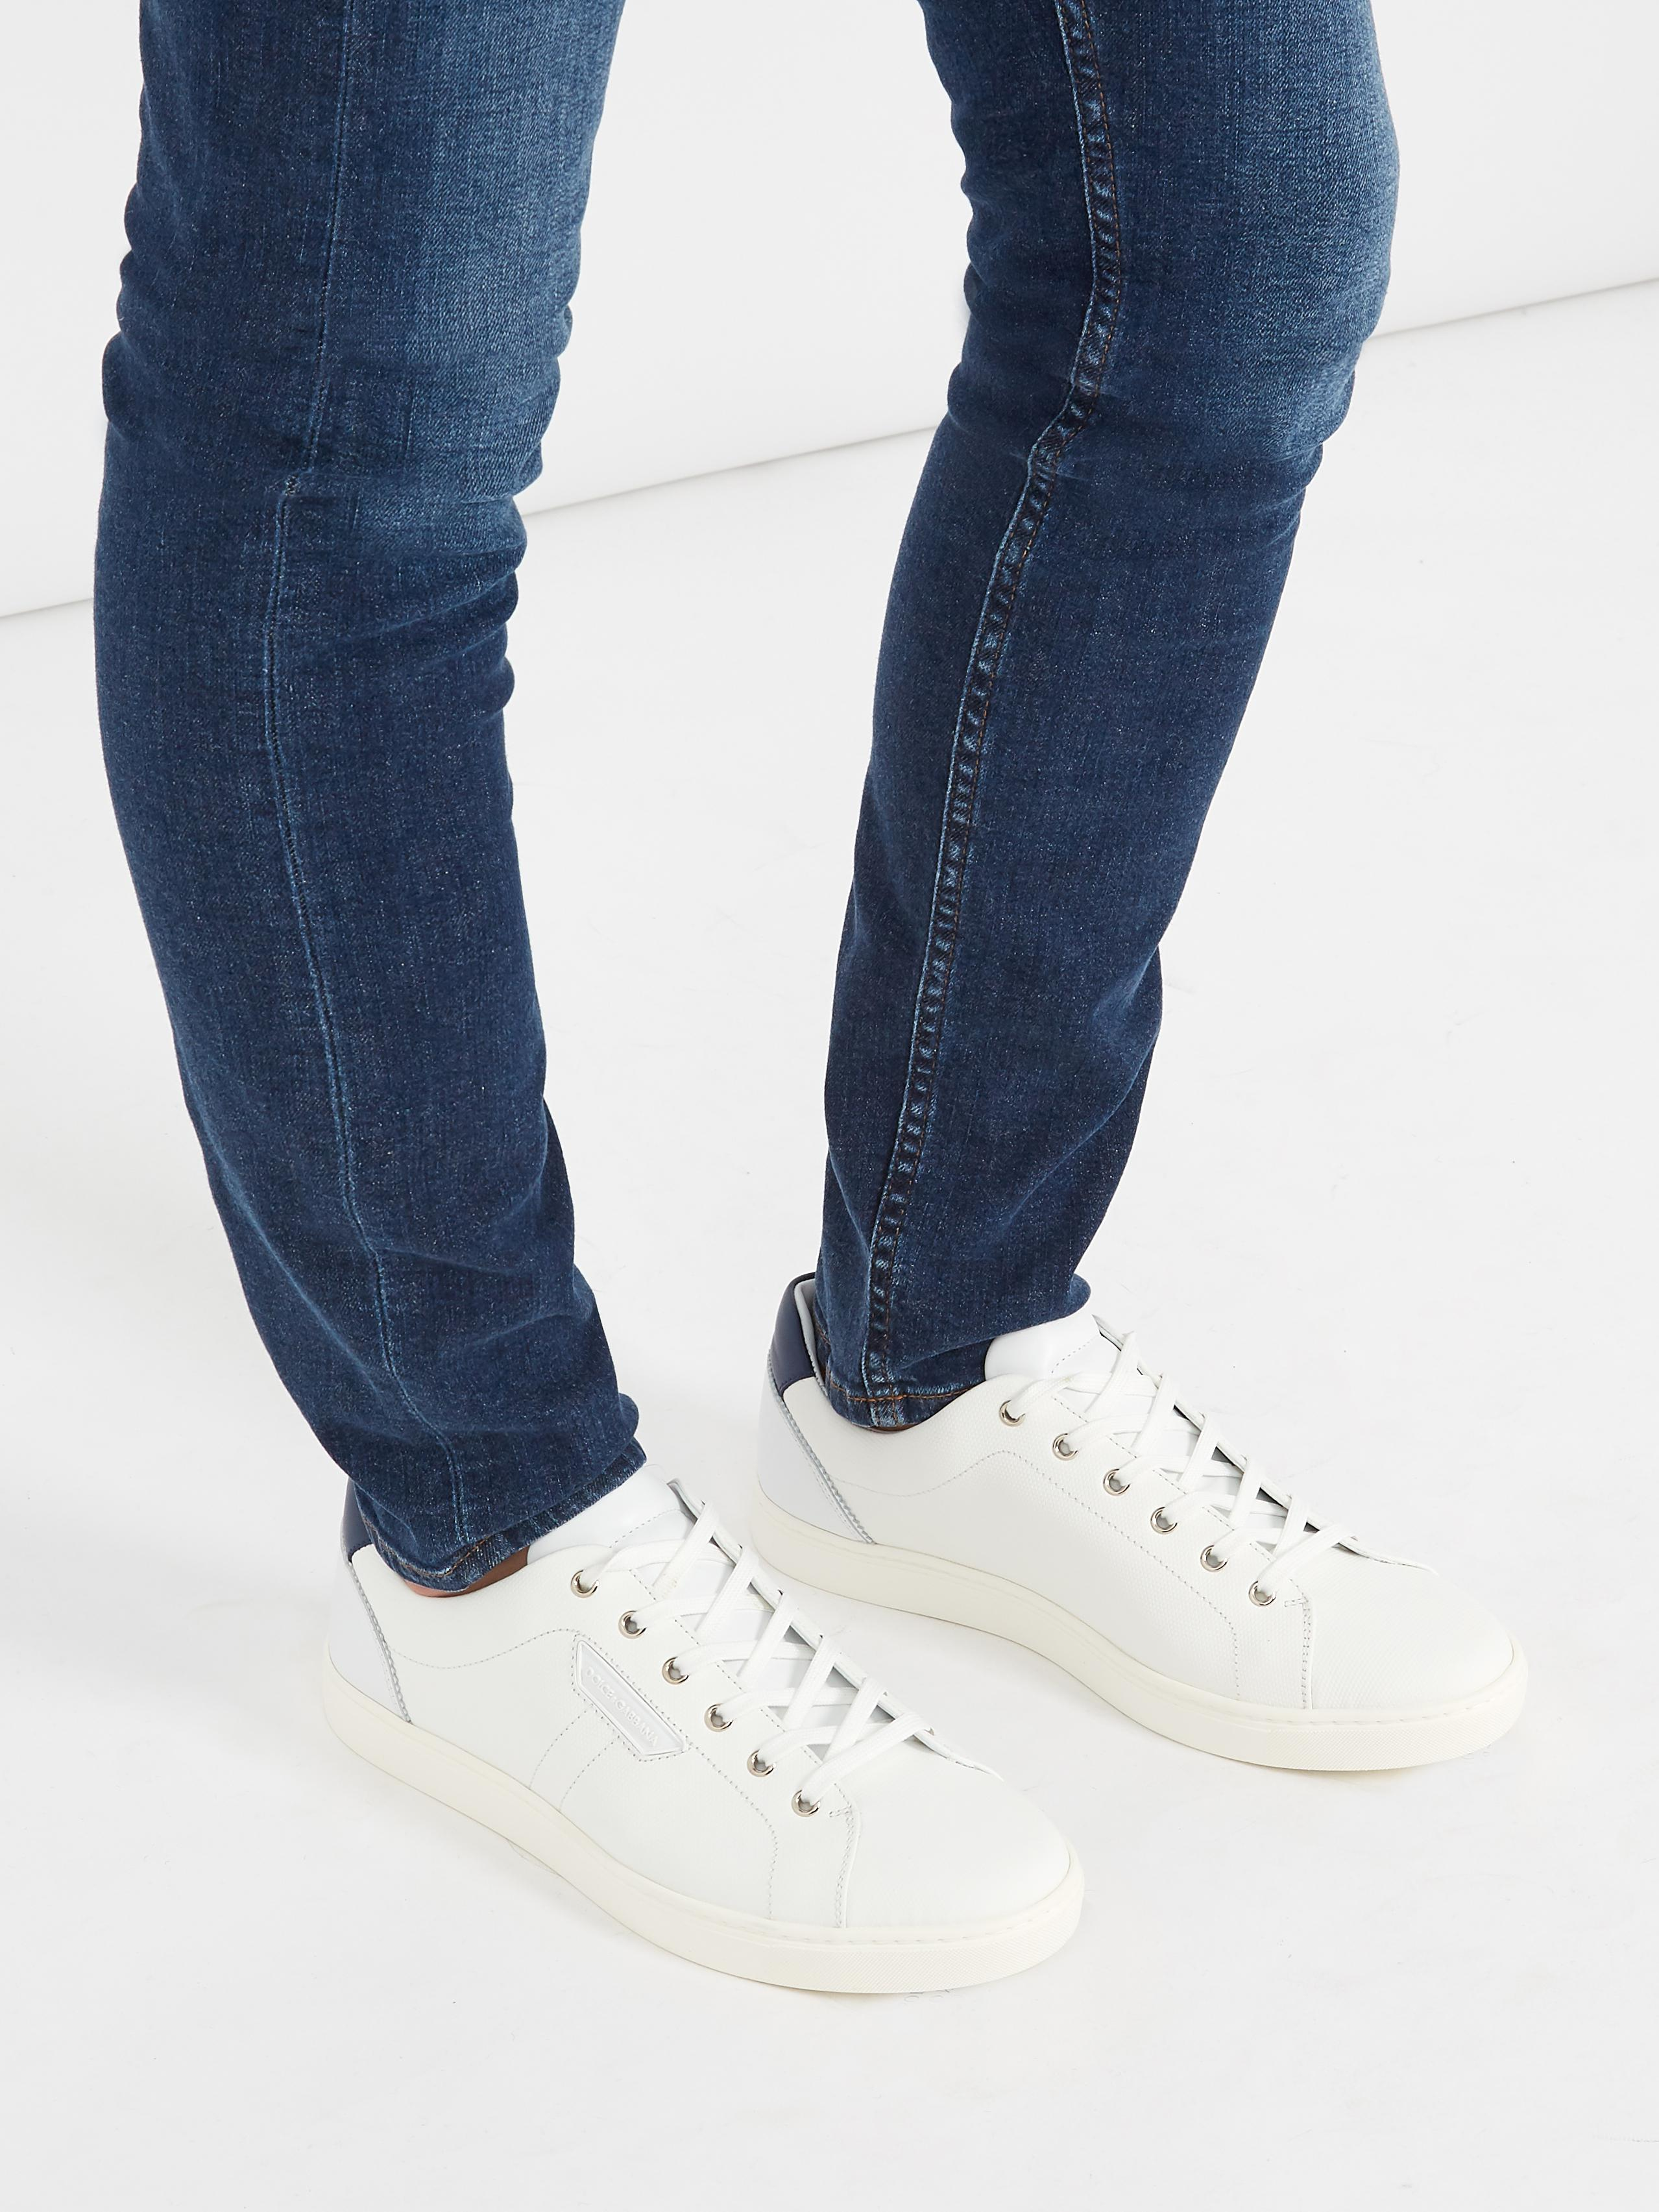 Dolce & Gabbana Denim Low-Top Sneakers with mastercard cheap online 98qtZStSm0